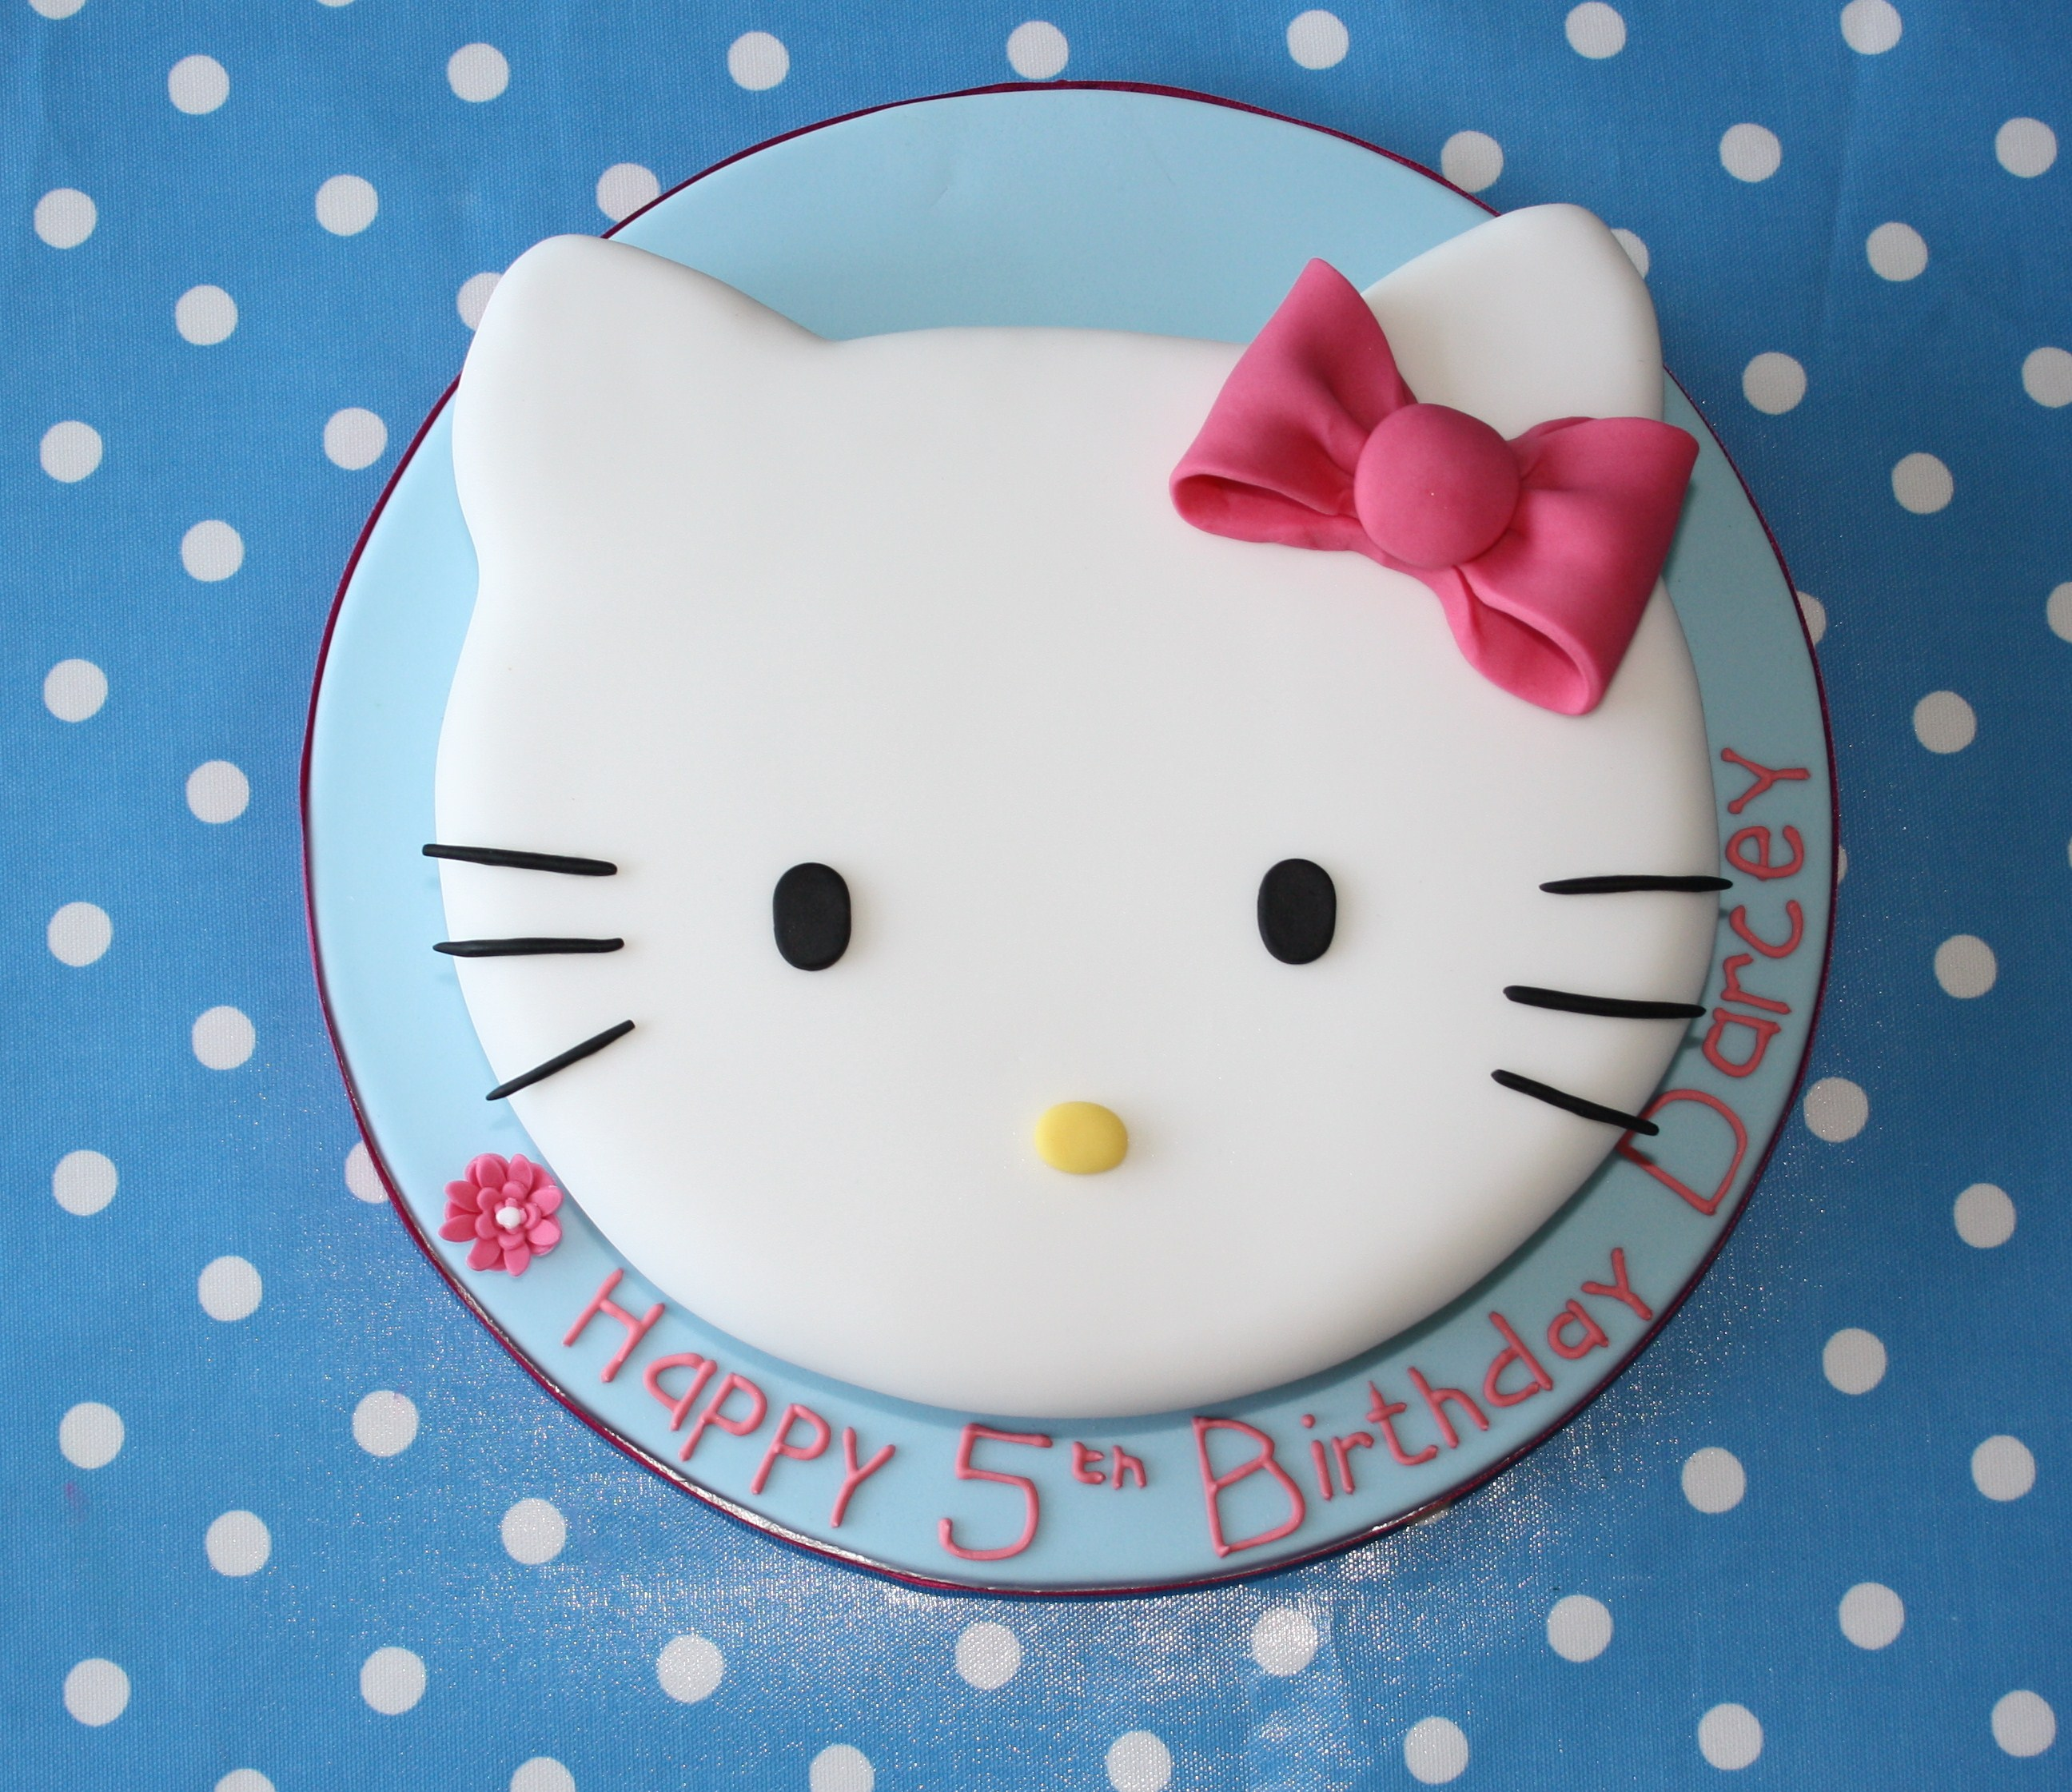 Images Of A Hello Kitty Cake : ????? ??? ???? ??? ??? ???? ???? *_^ - ???? ???